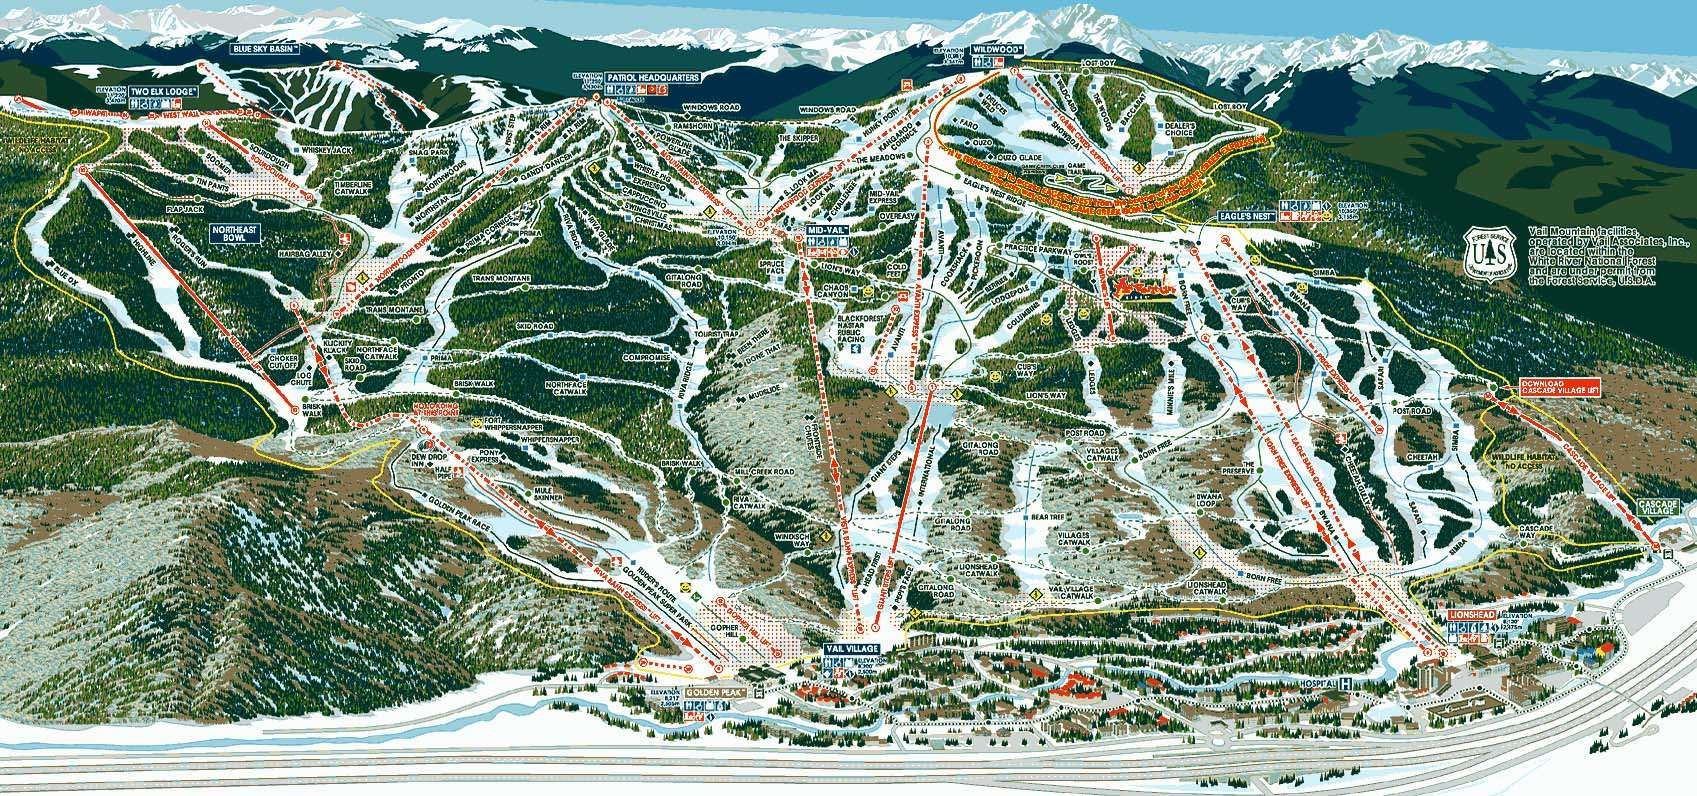 main vail trailmap. where to shred